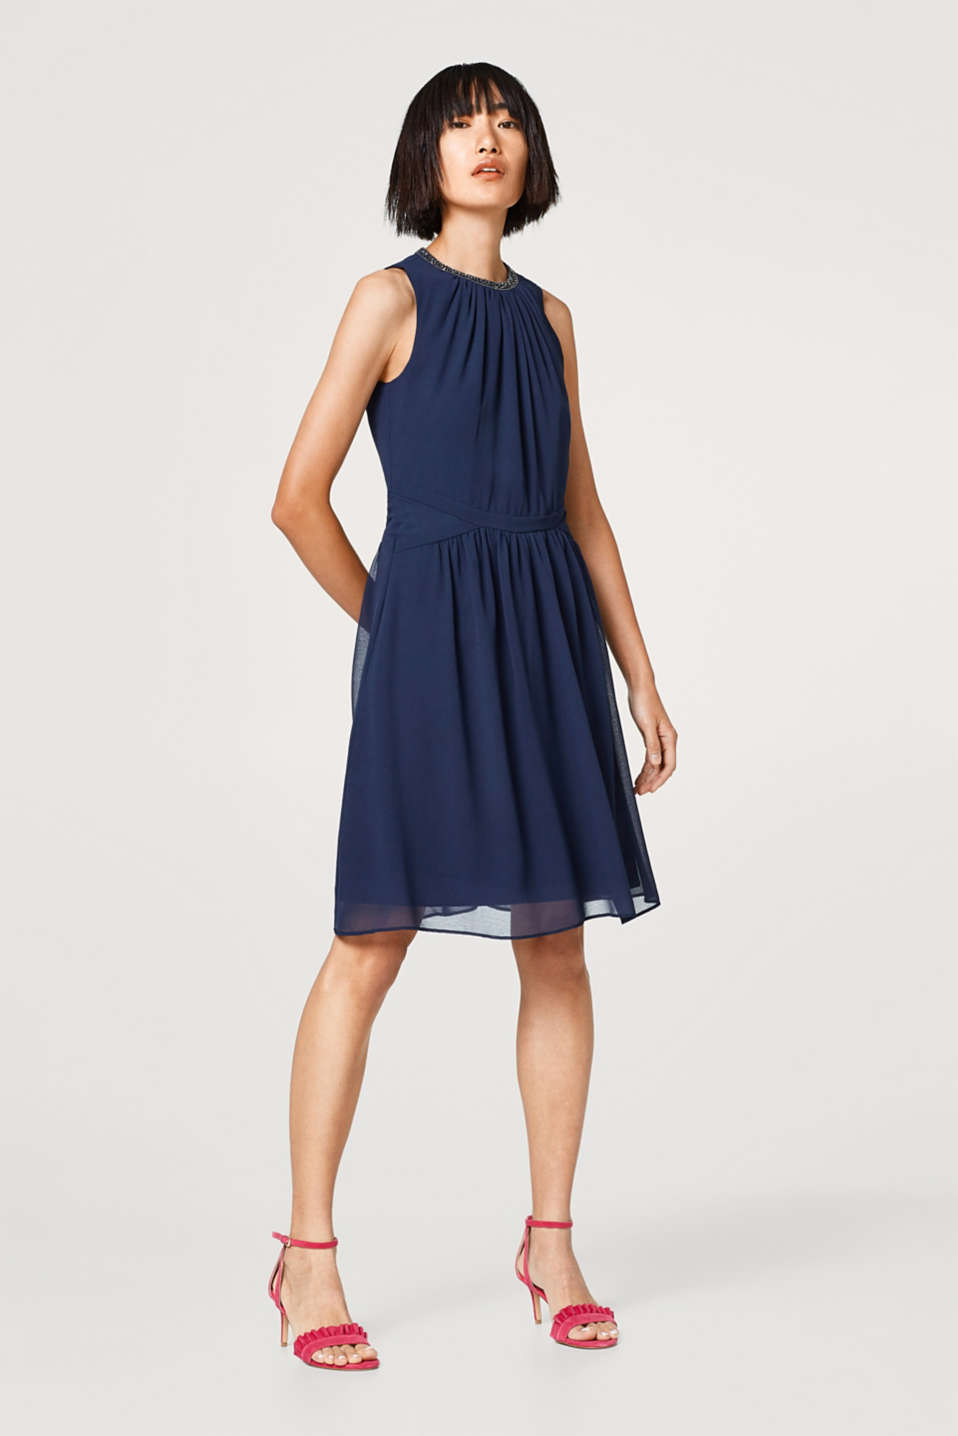 Esprit - Chiffon dress embellished with rod-shaped sequins